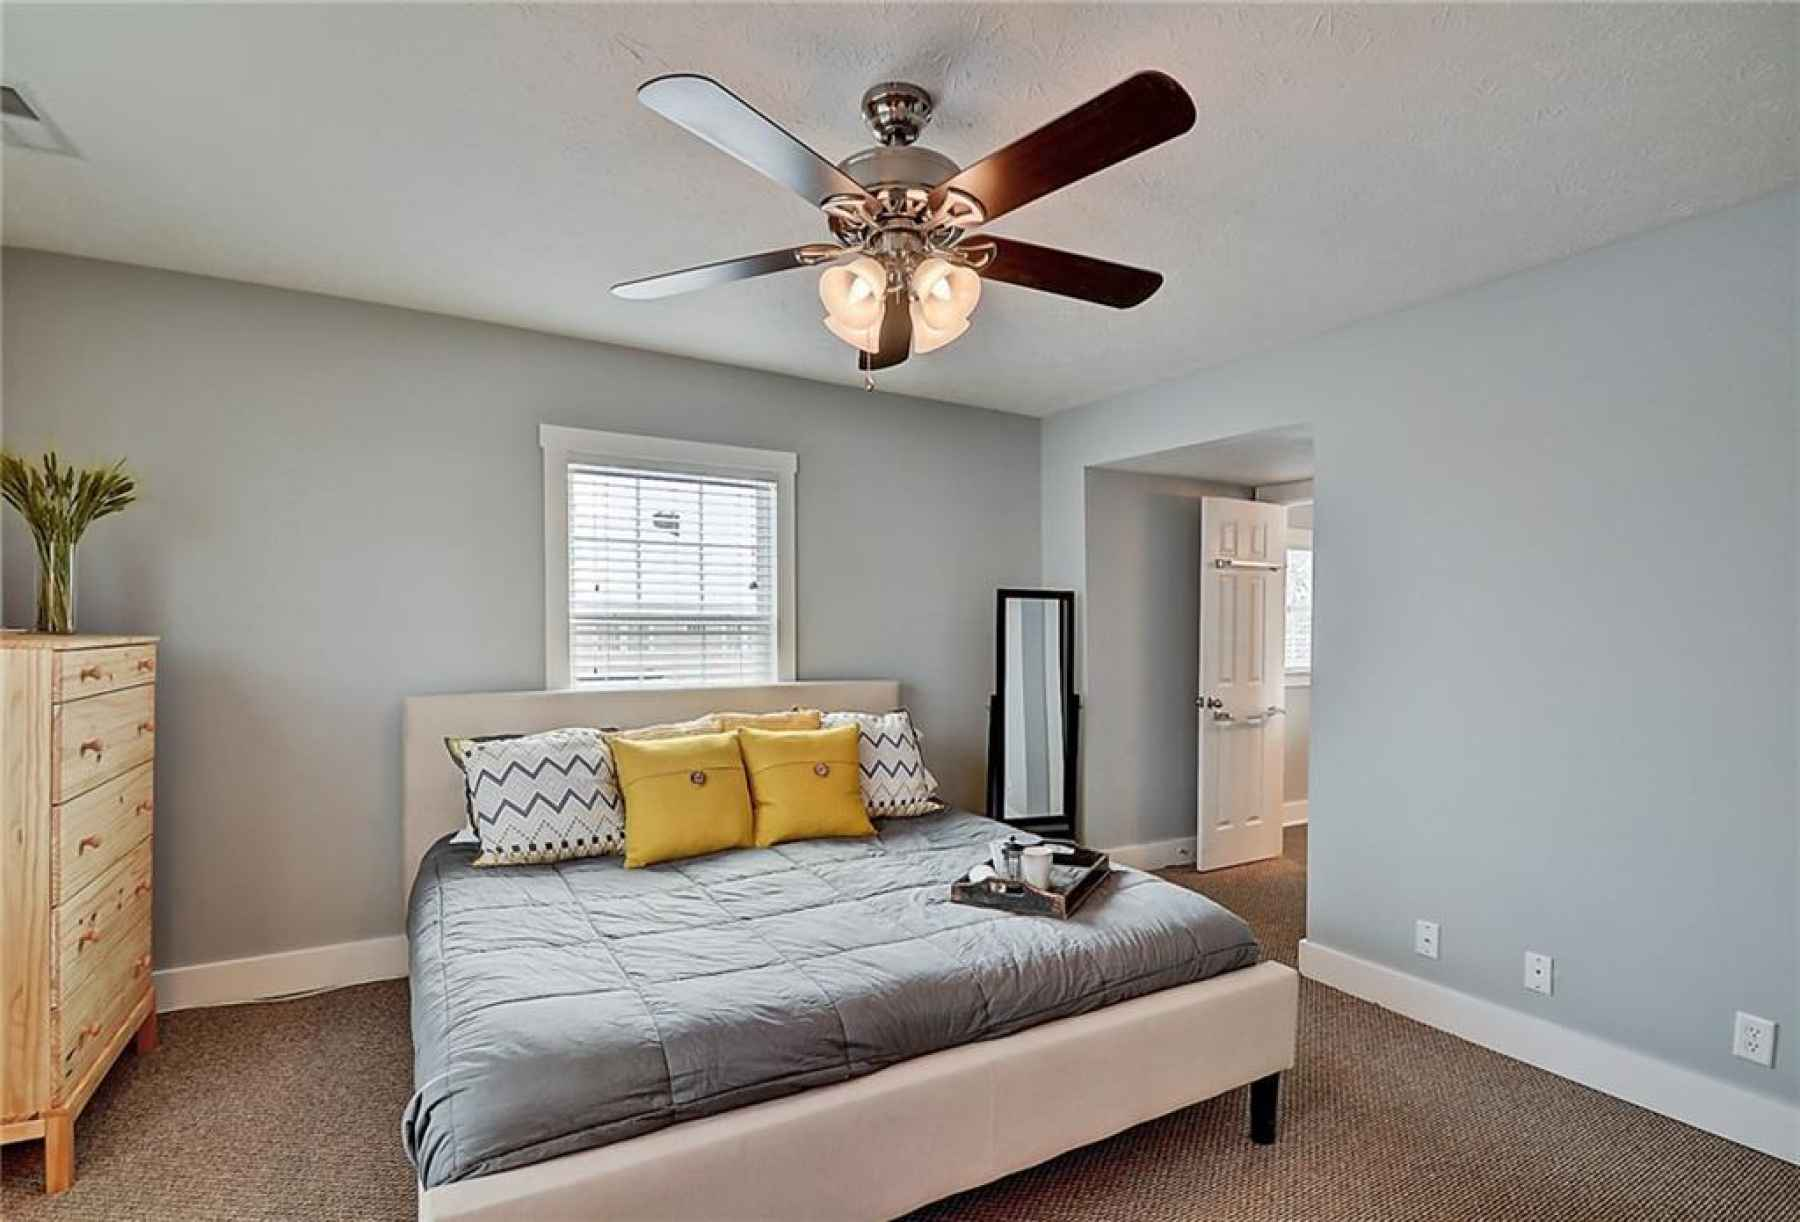 Second floor. Master bedroom. Walk-in closet and en-suite bath is located in the right of this photo